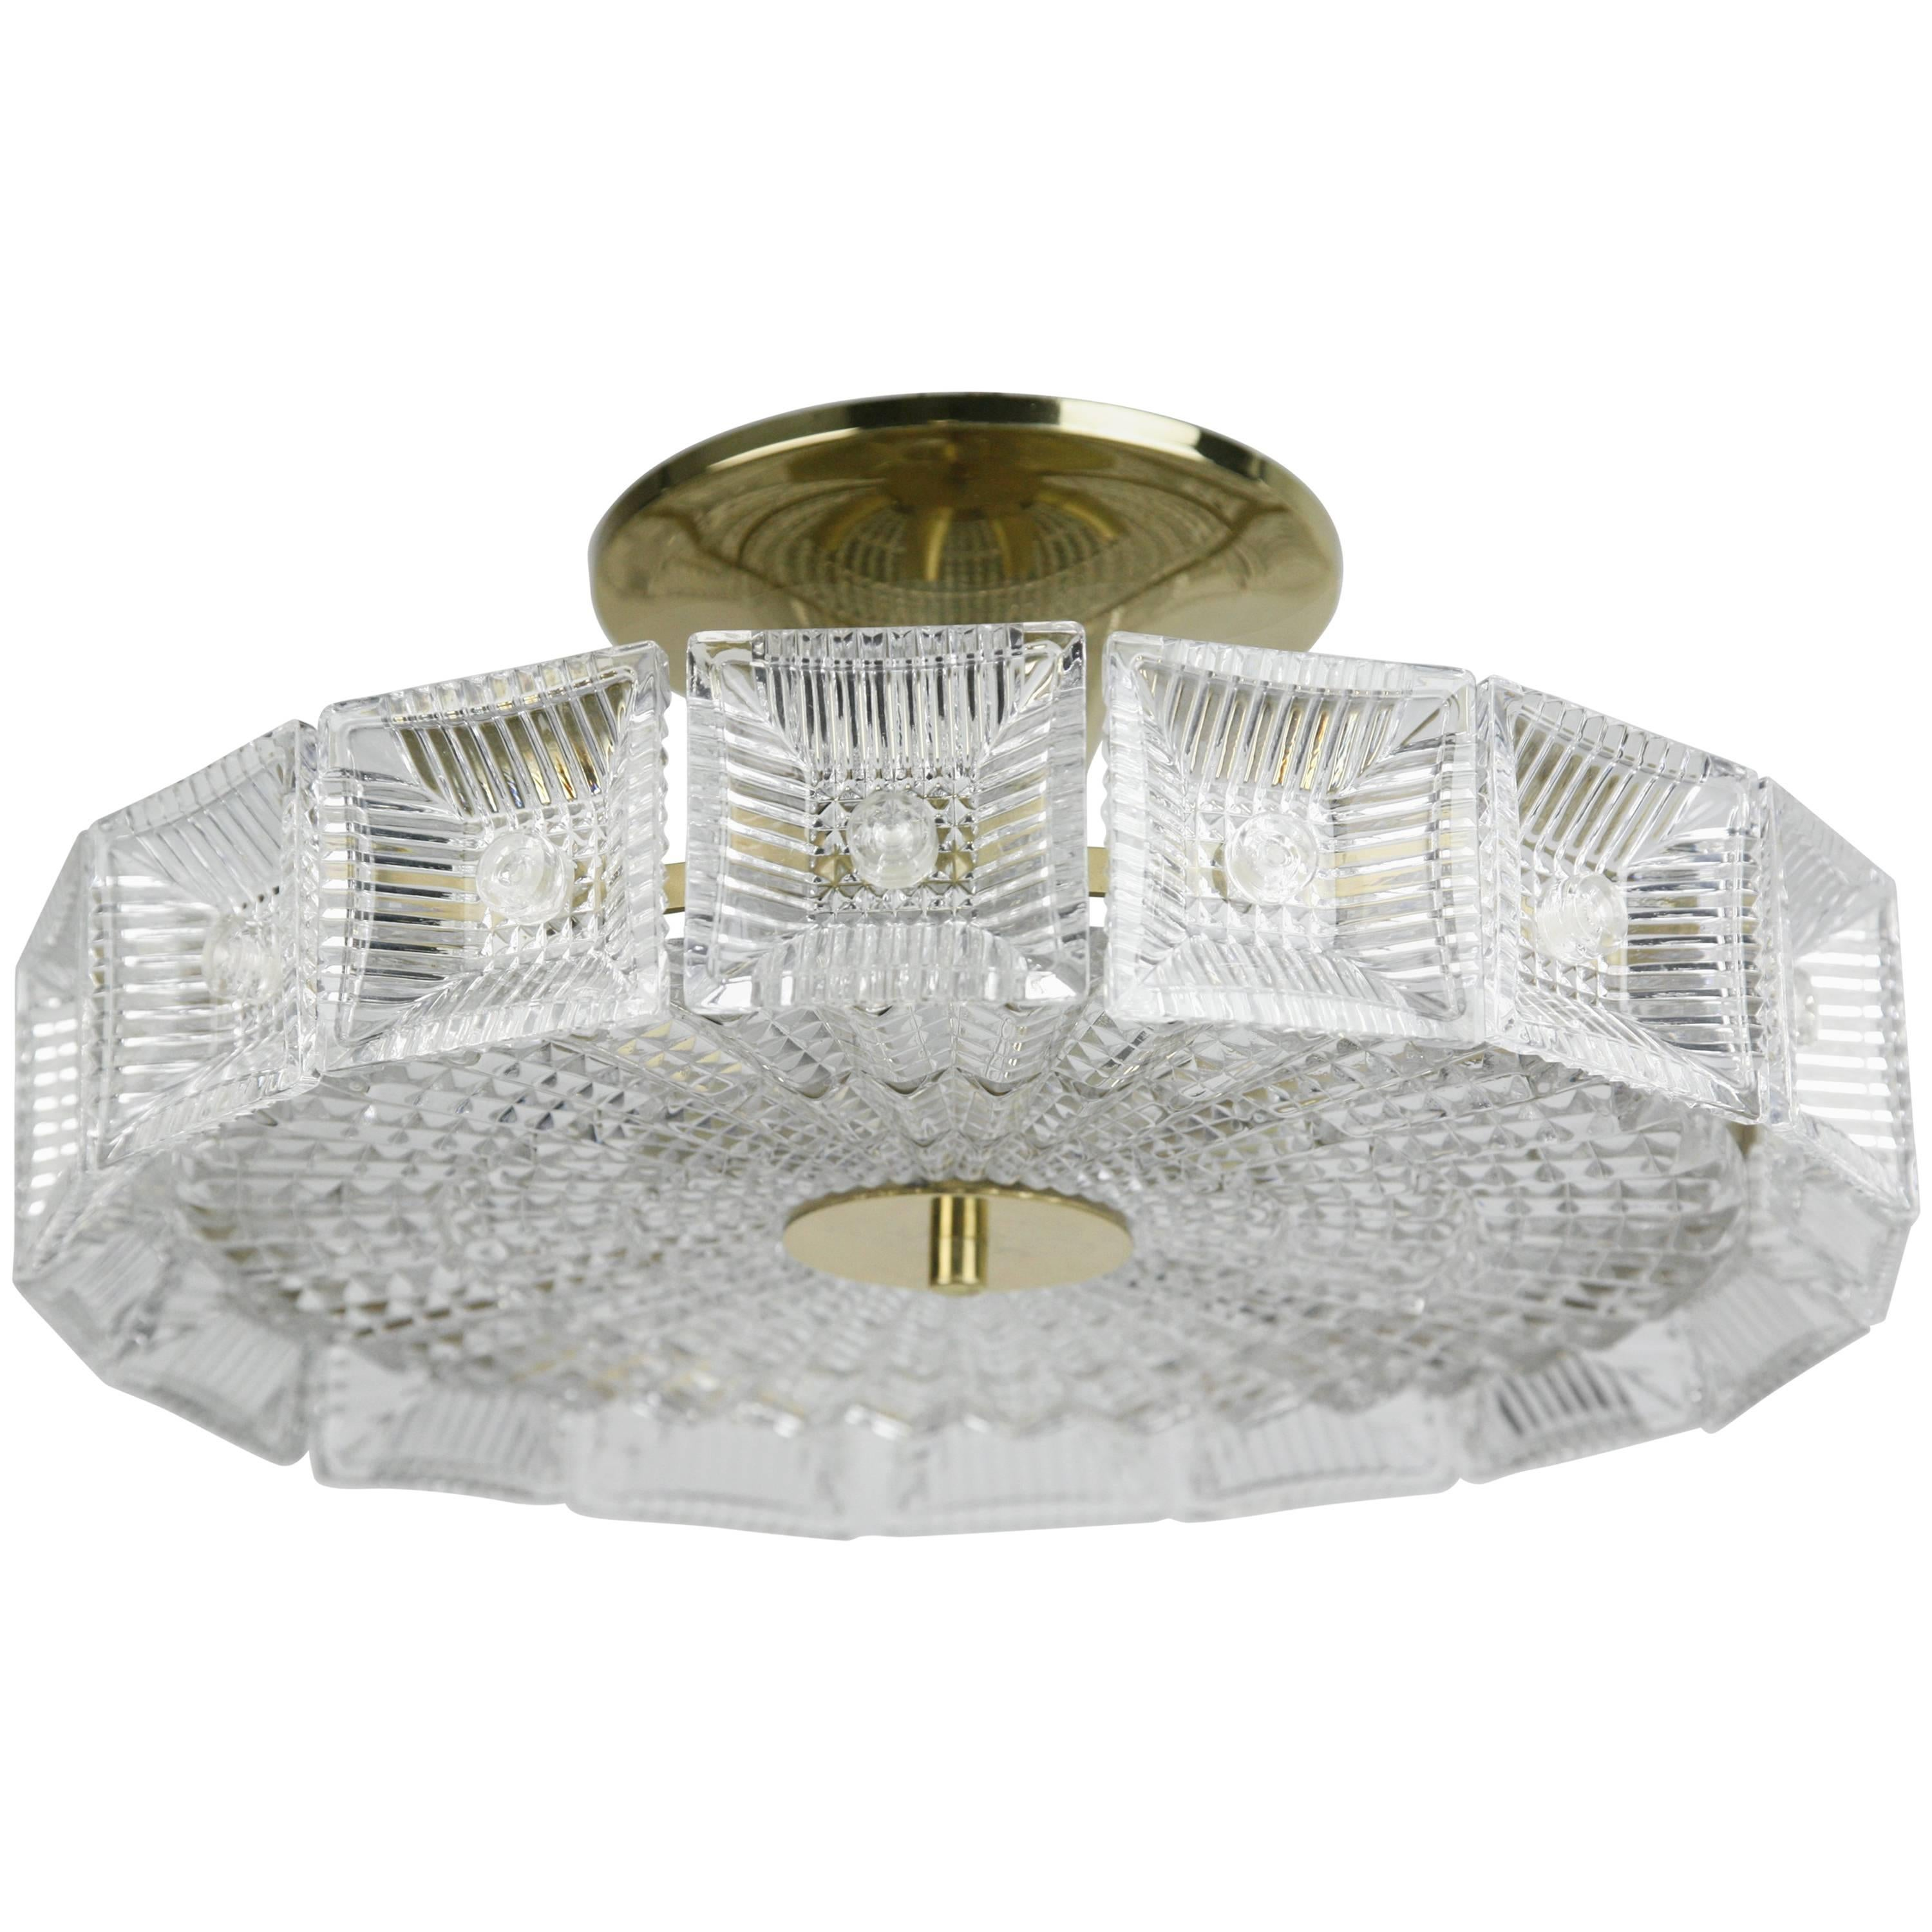 Orrefors Crystal Flush Mount Designed by Carl Fagerlund